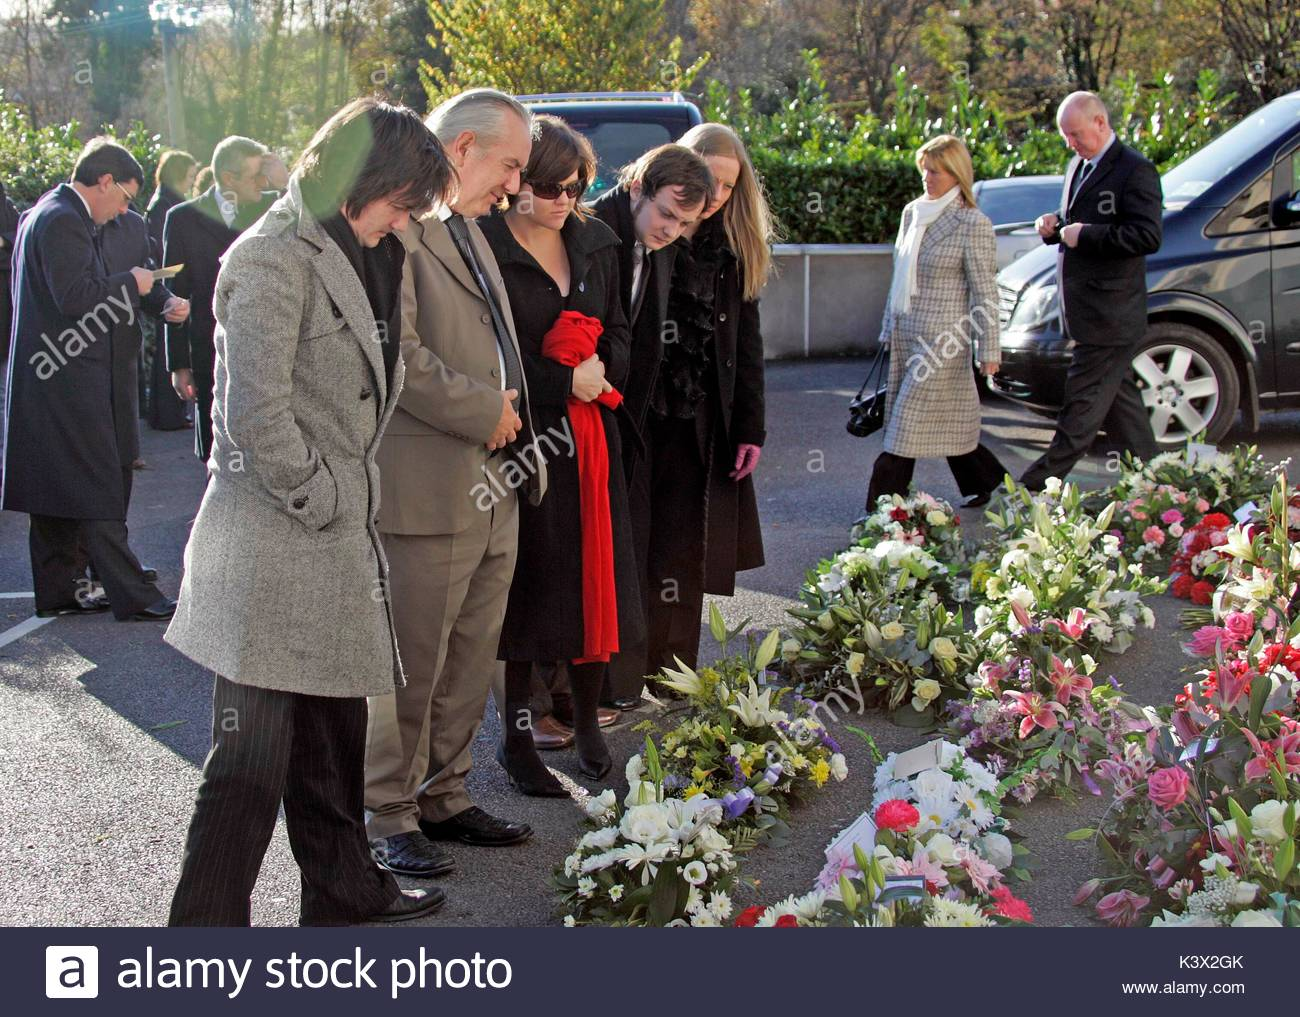 Jamie Myers at the funeral of Geraldine O'Keefe, mother of actor Jonathon Rhys Myers of 'The Tudors' - Stock Image